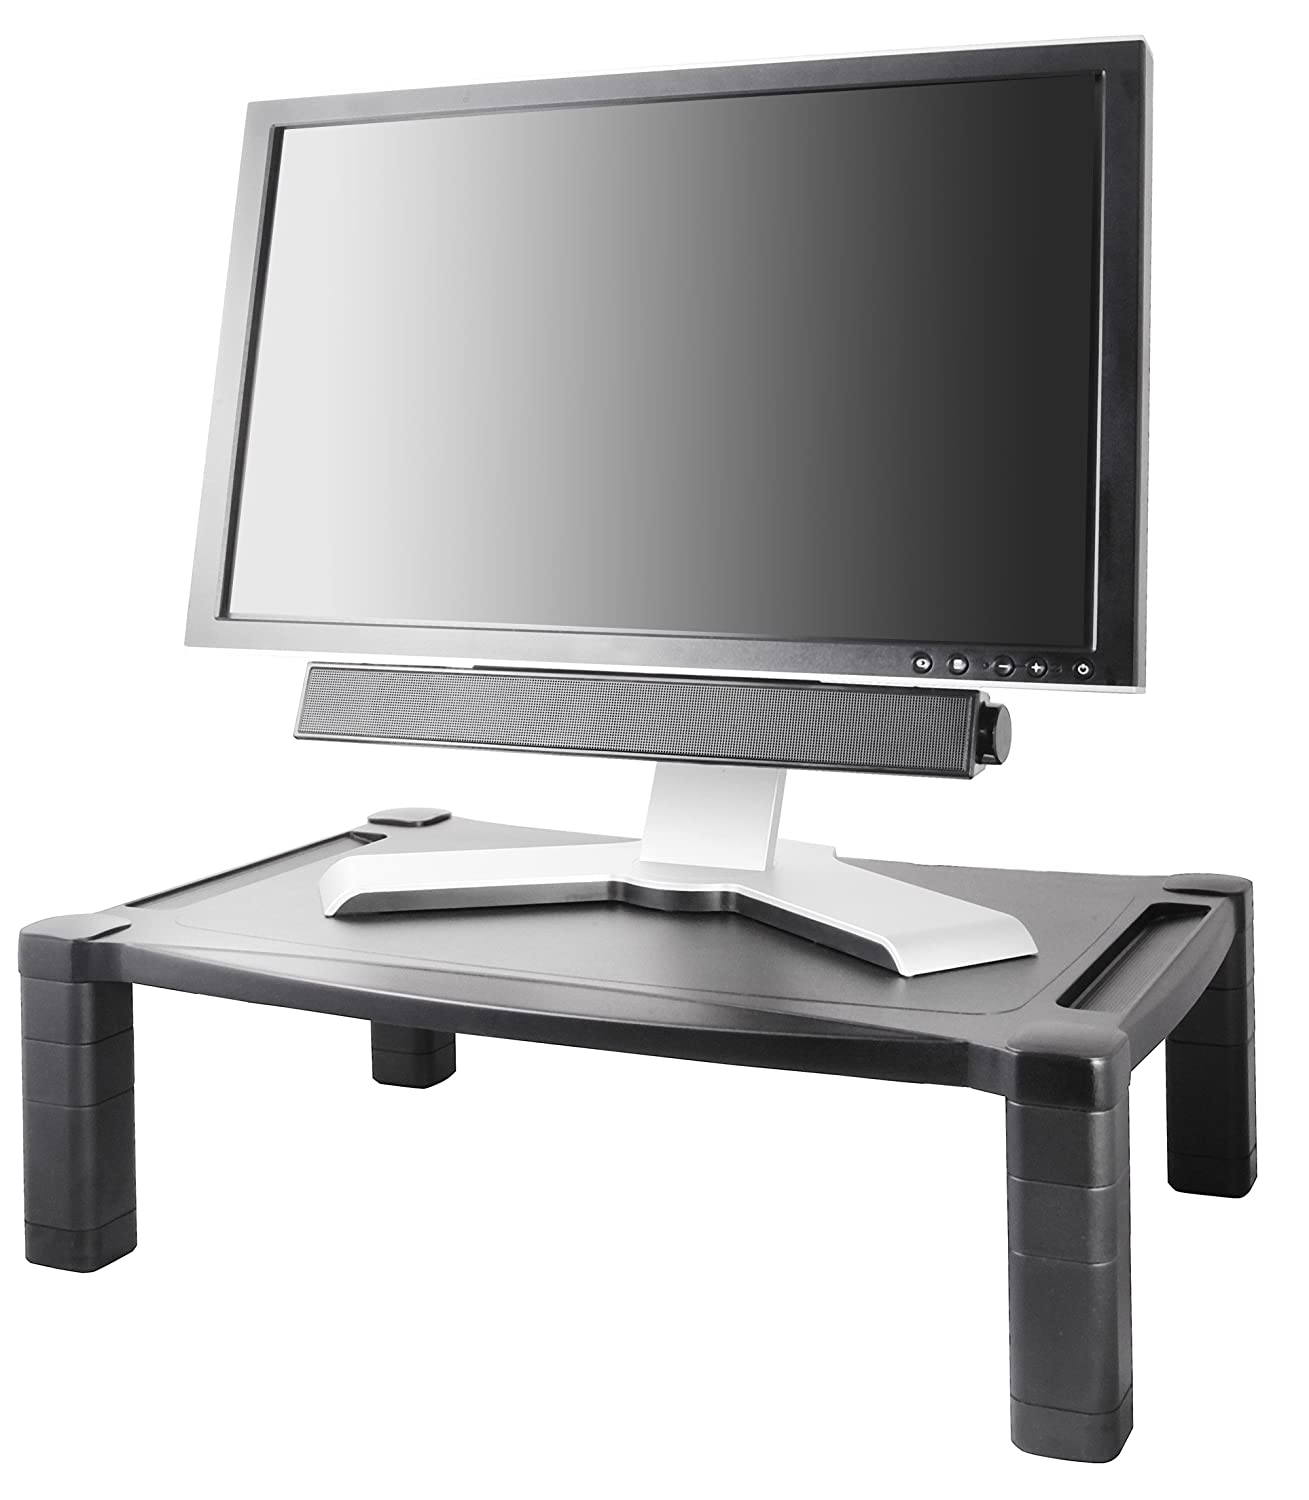 Height-Adjustable KTKMS500 Black 20 x 13 1//4 Kantek Wide Two-Level Stand